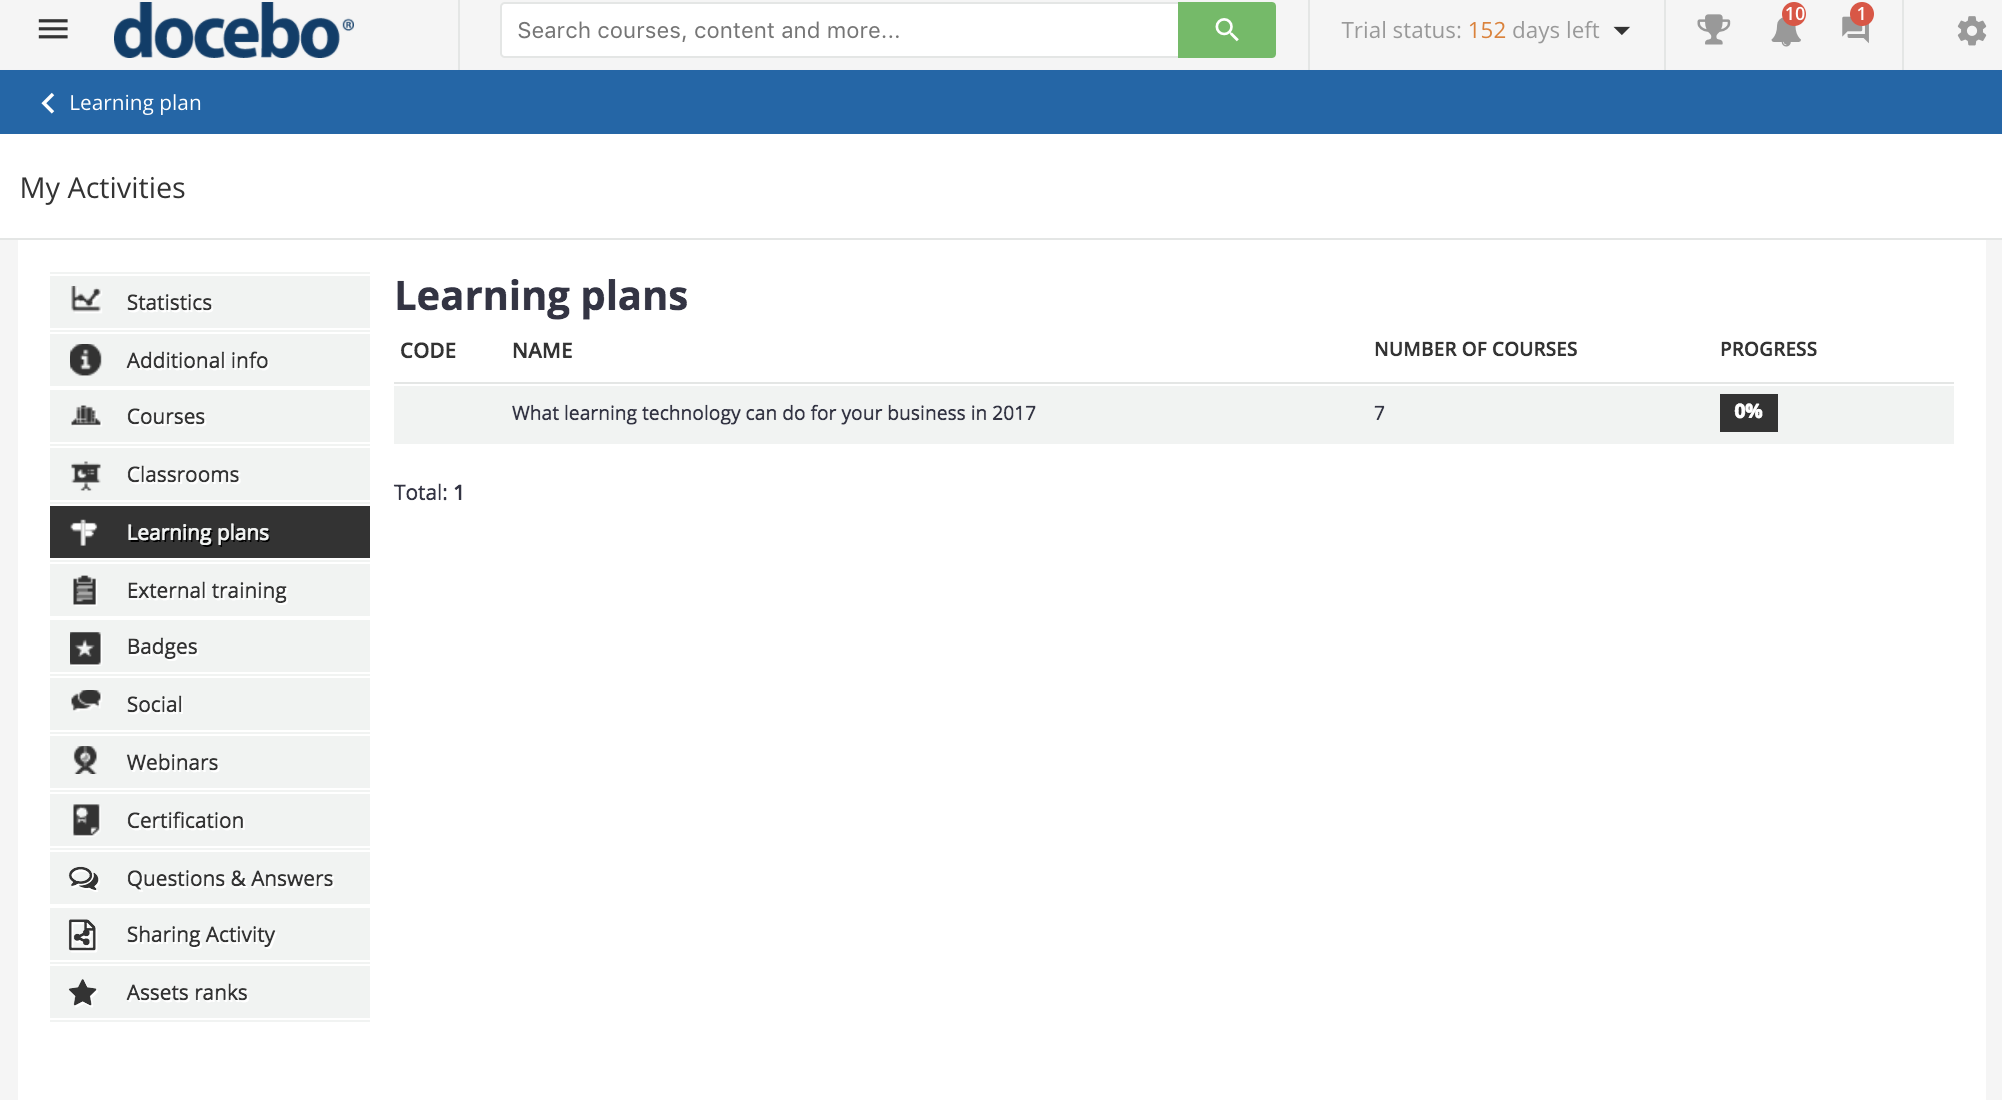 my activities learning plans